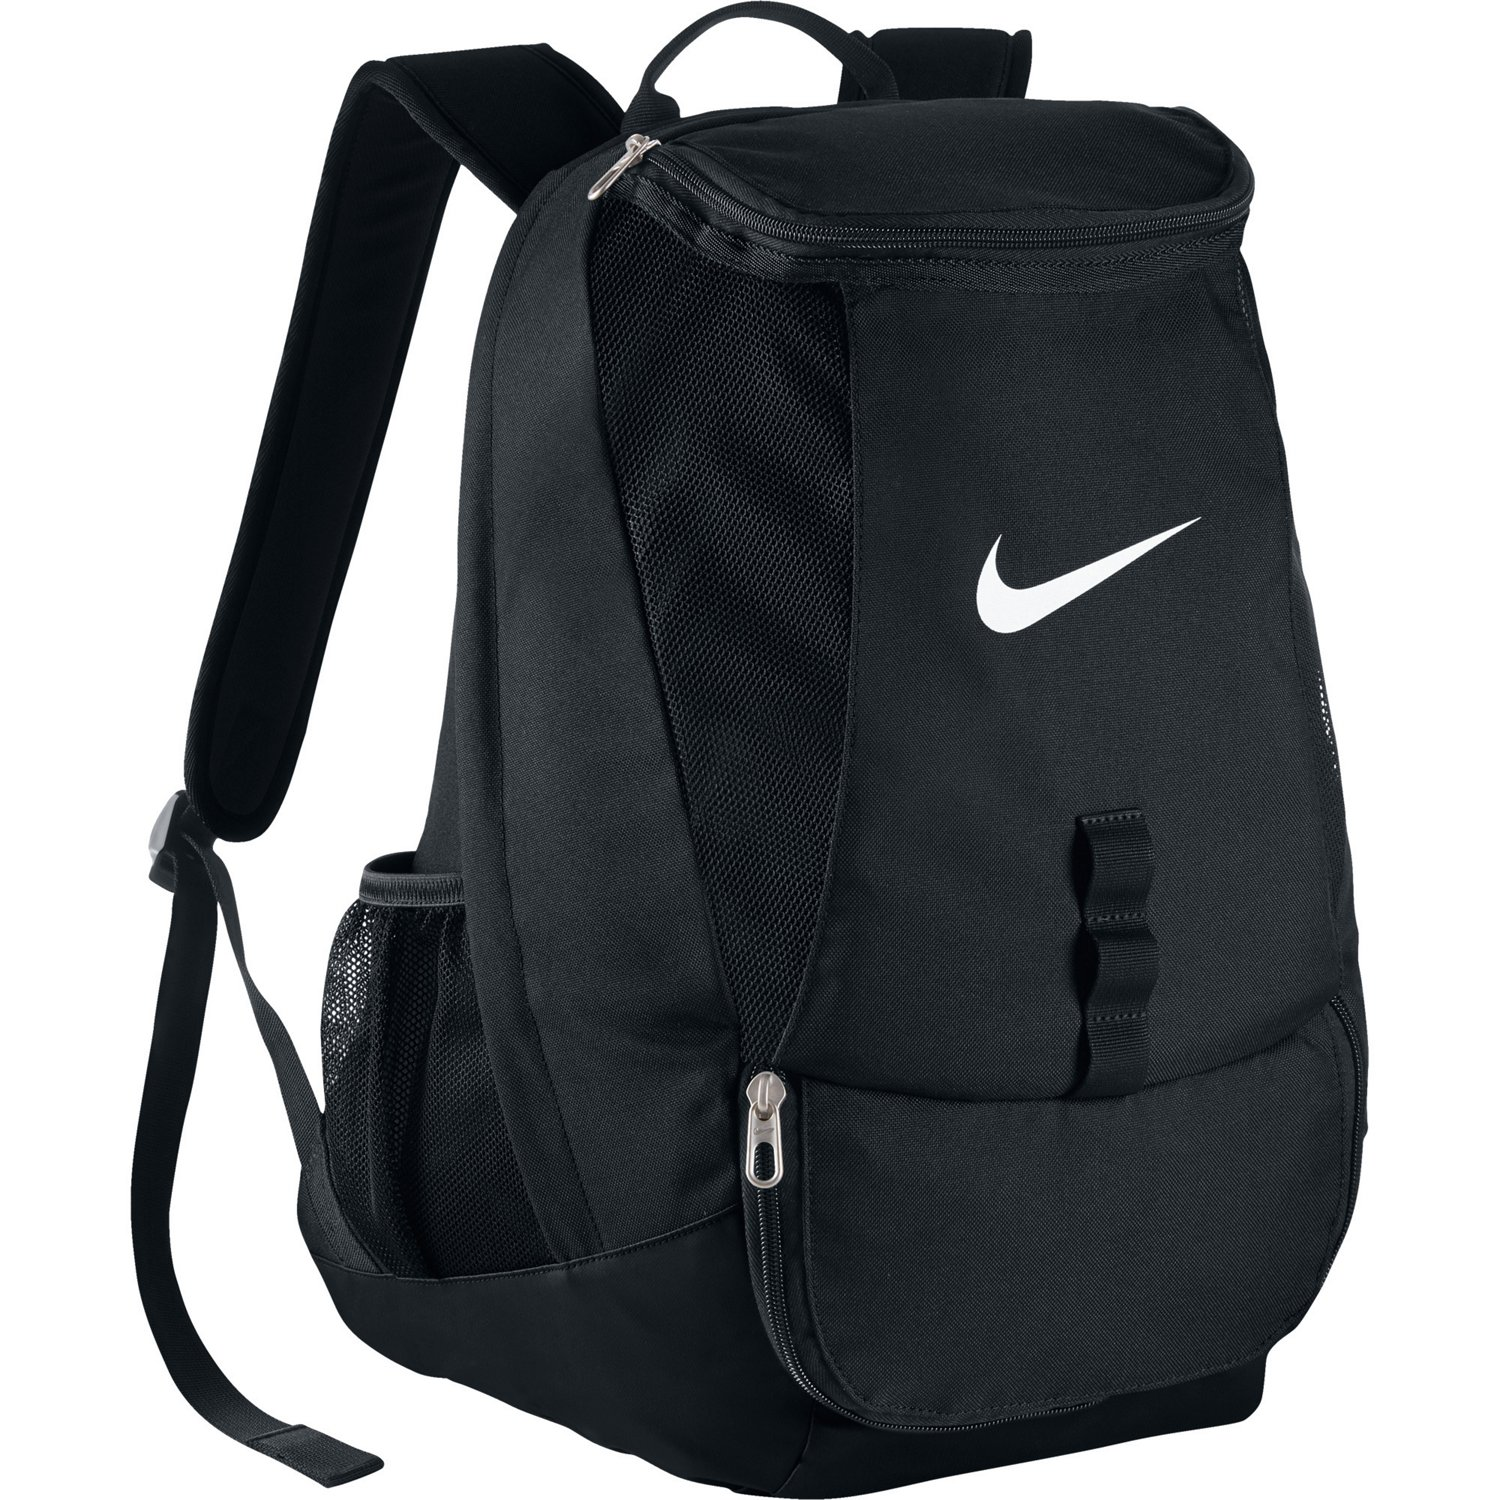 45c4d4c4b48 Display product reviews for Nike Men s Club Team Swoosh Soccer Backpack